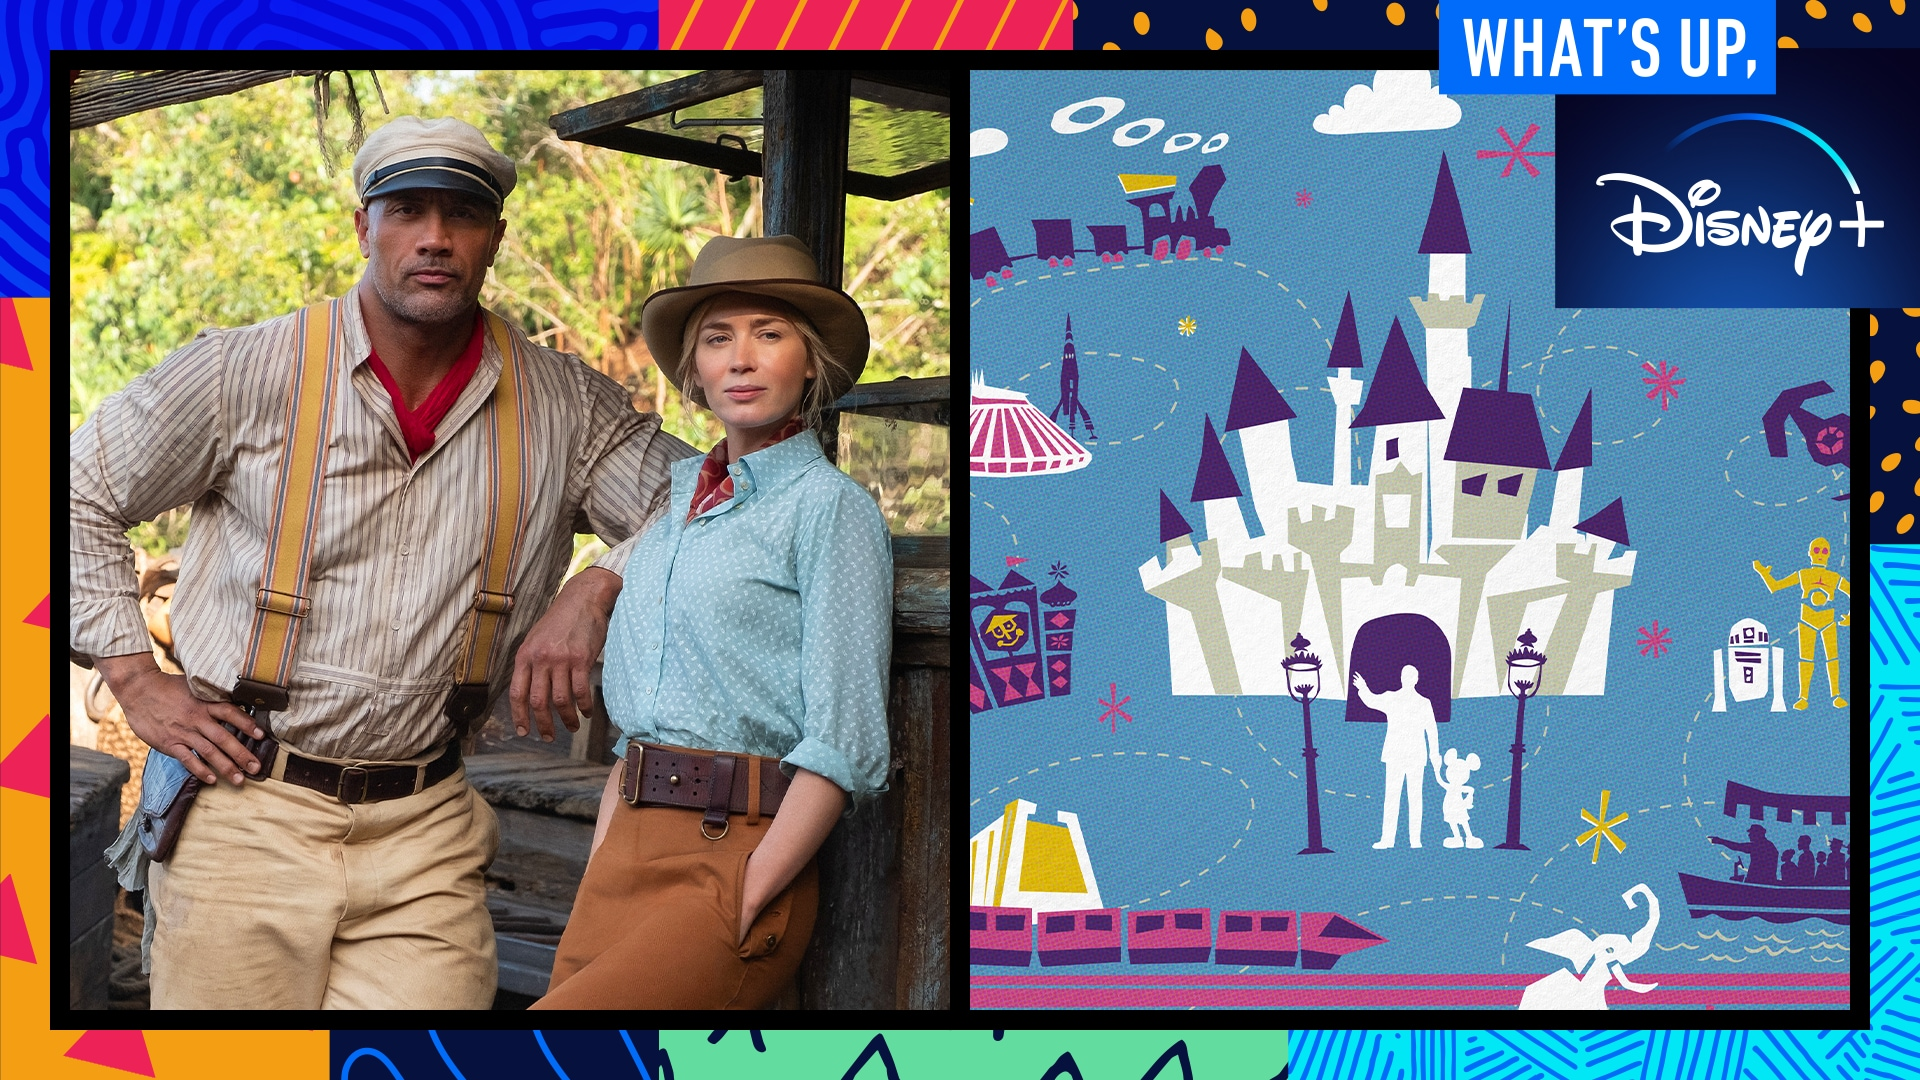 The Cast of Disney's Jungle Cruise and Behind the Attraction | What's Up, Disney+